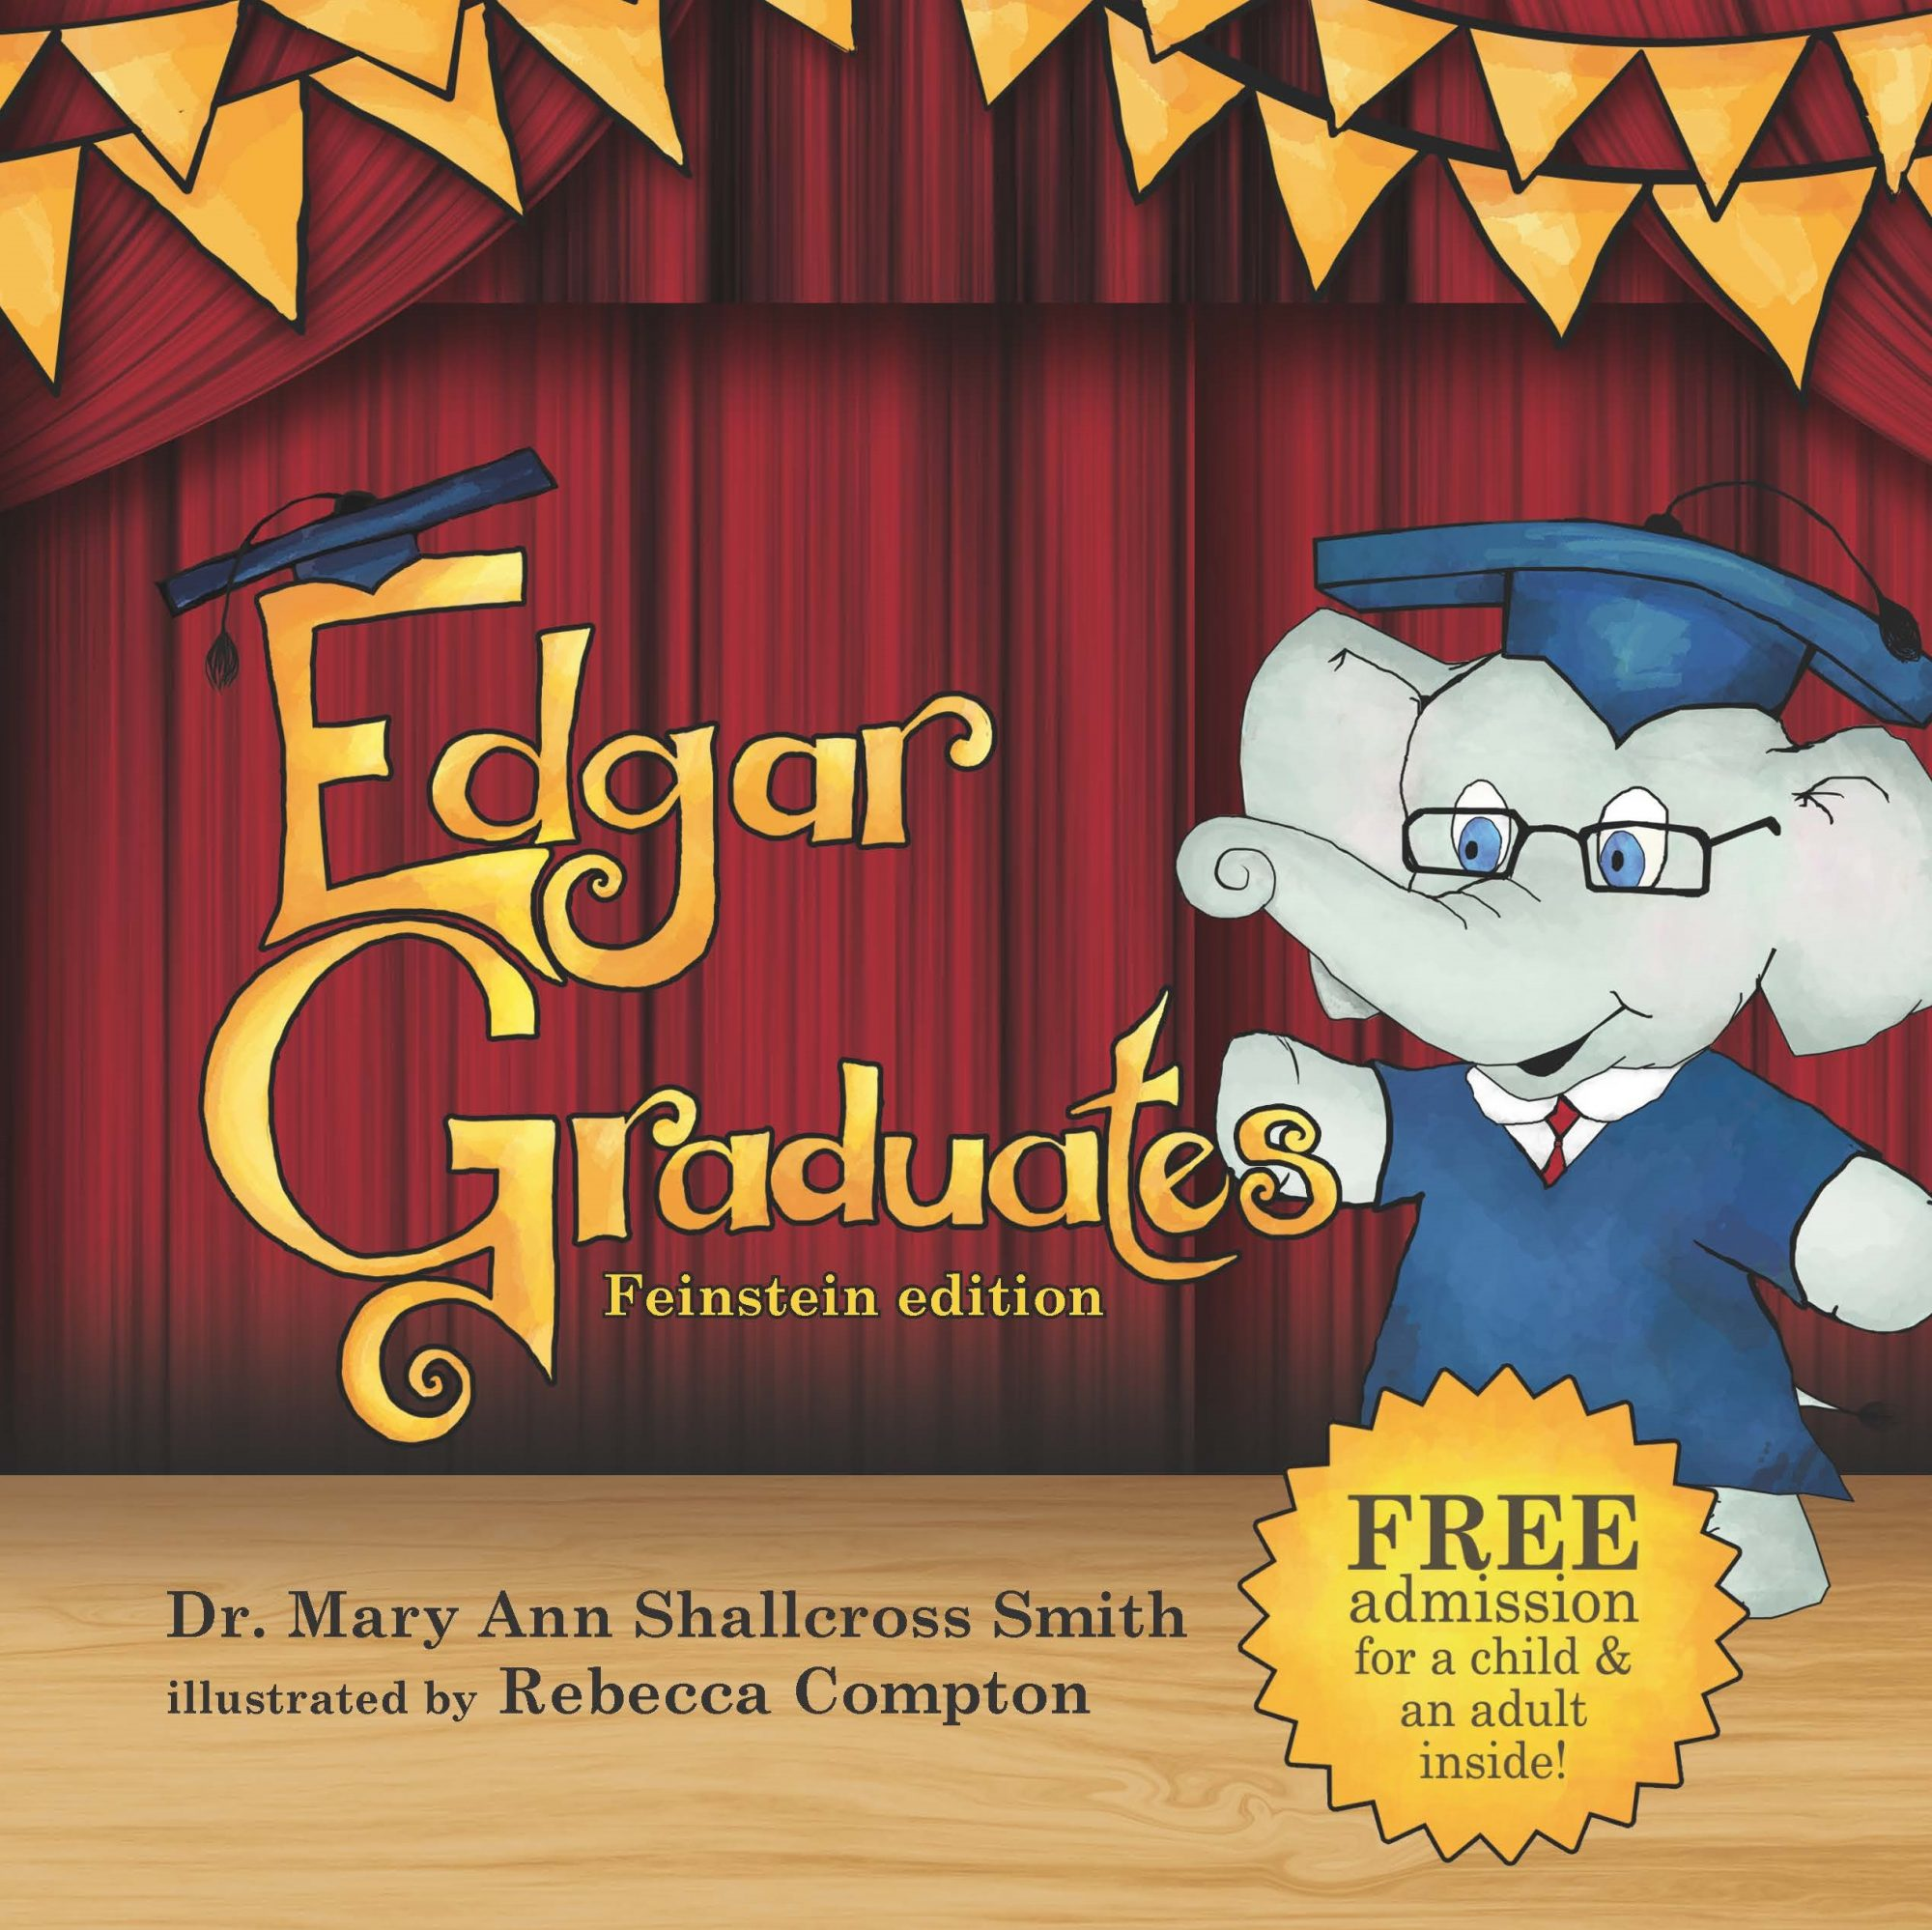 Edgar Graduates book – new Feinstein Edition